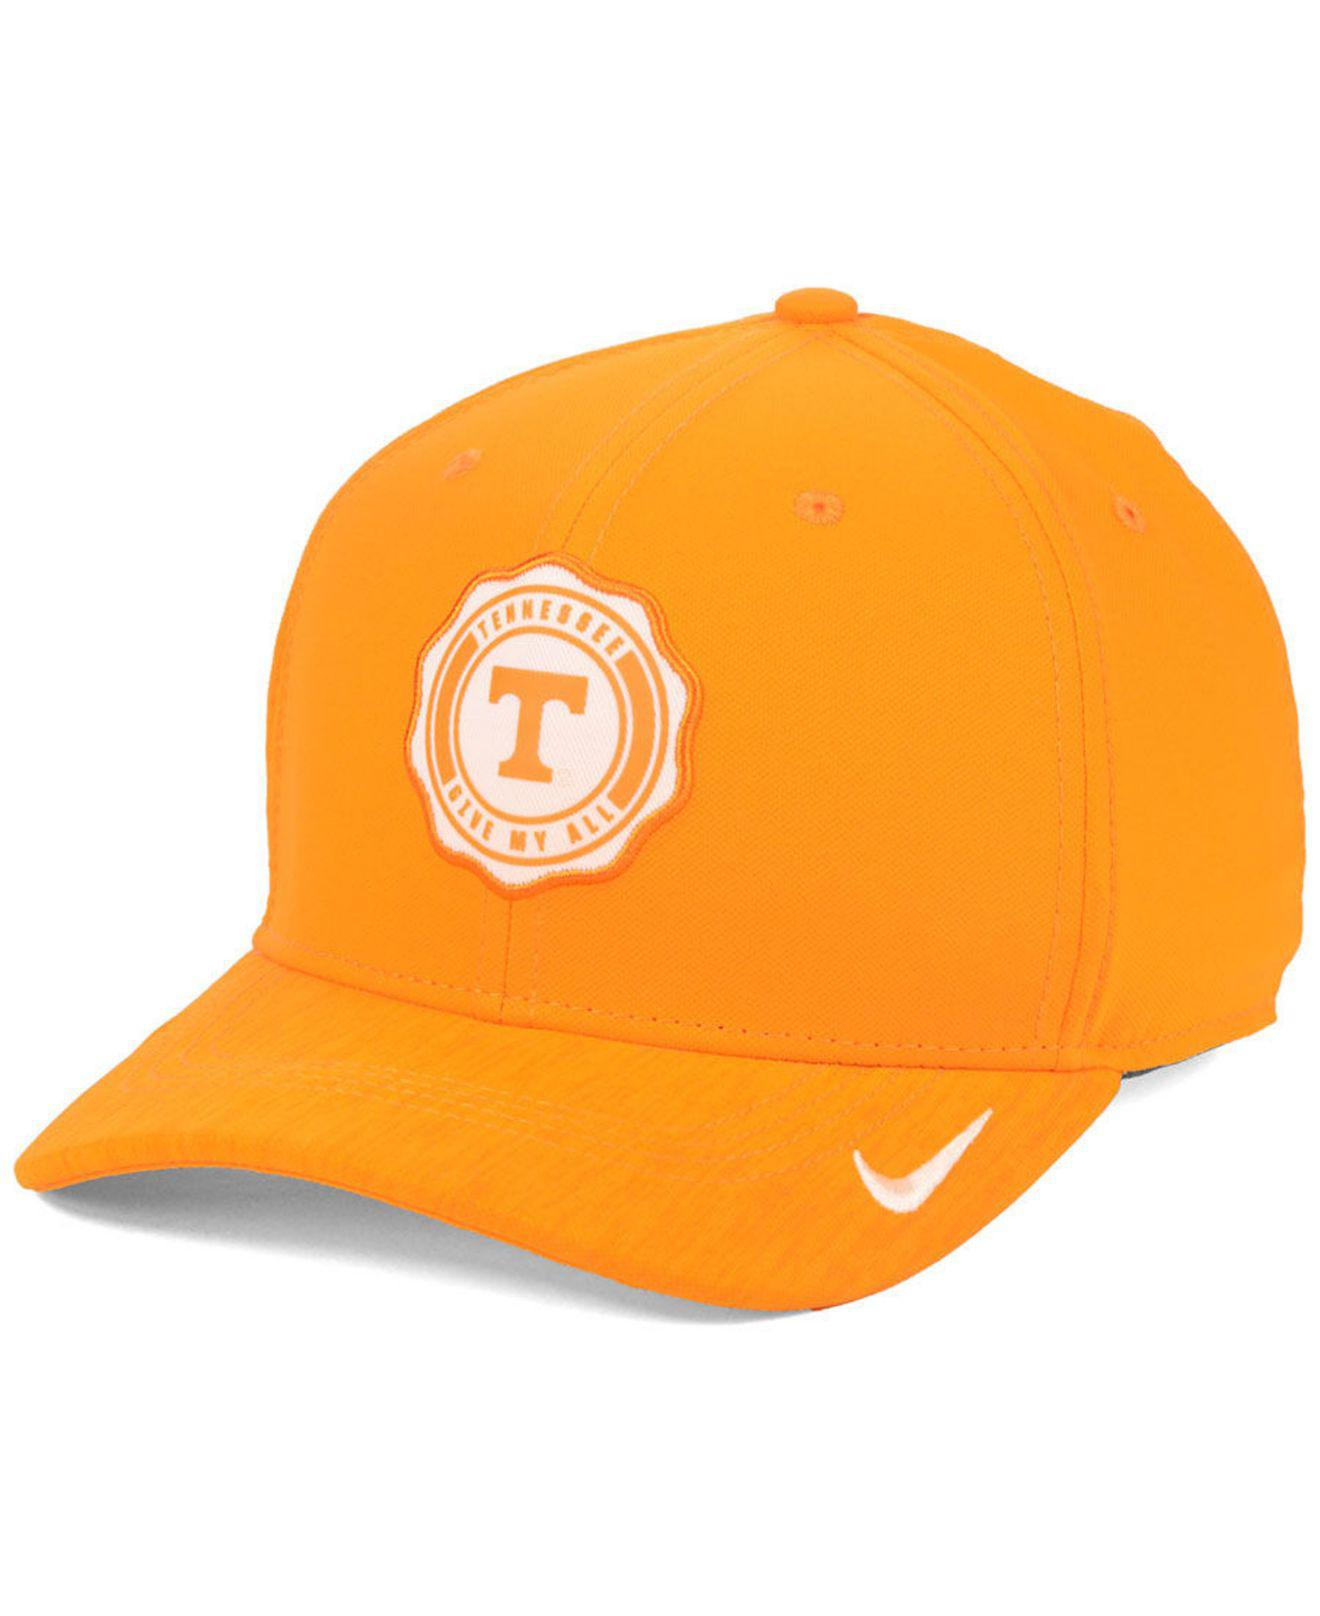 watch 1cbb3 a2b2e Nike. Men s Orange Tennessee Volunteers Rivalry Cap